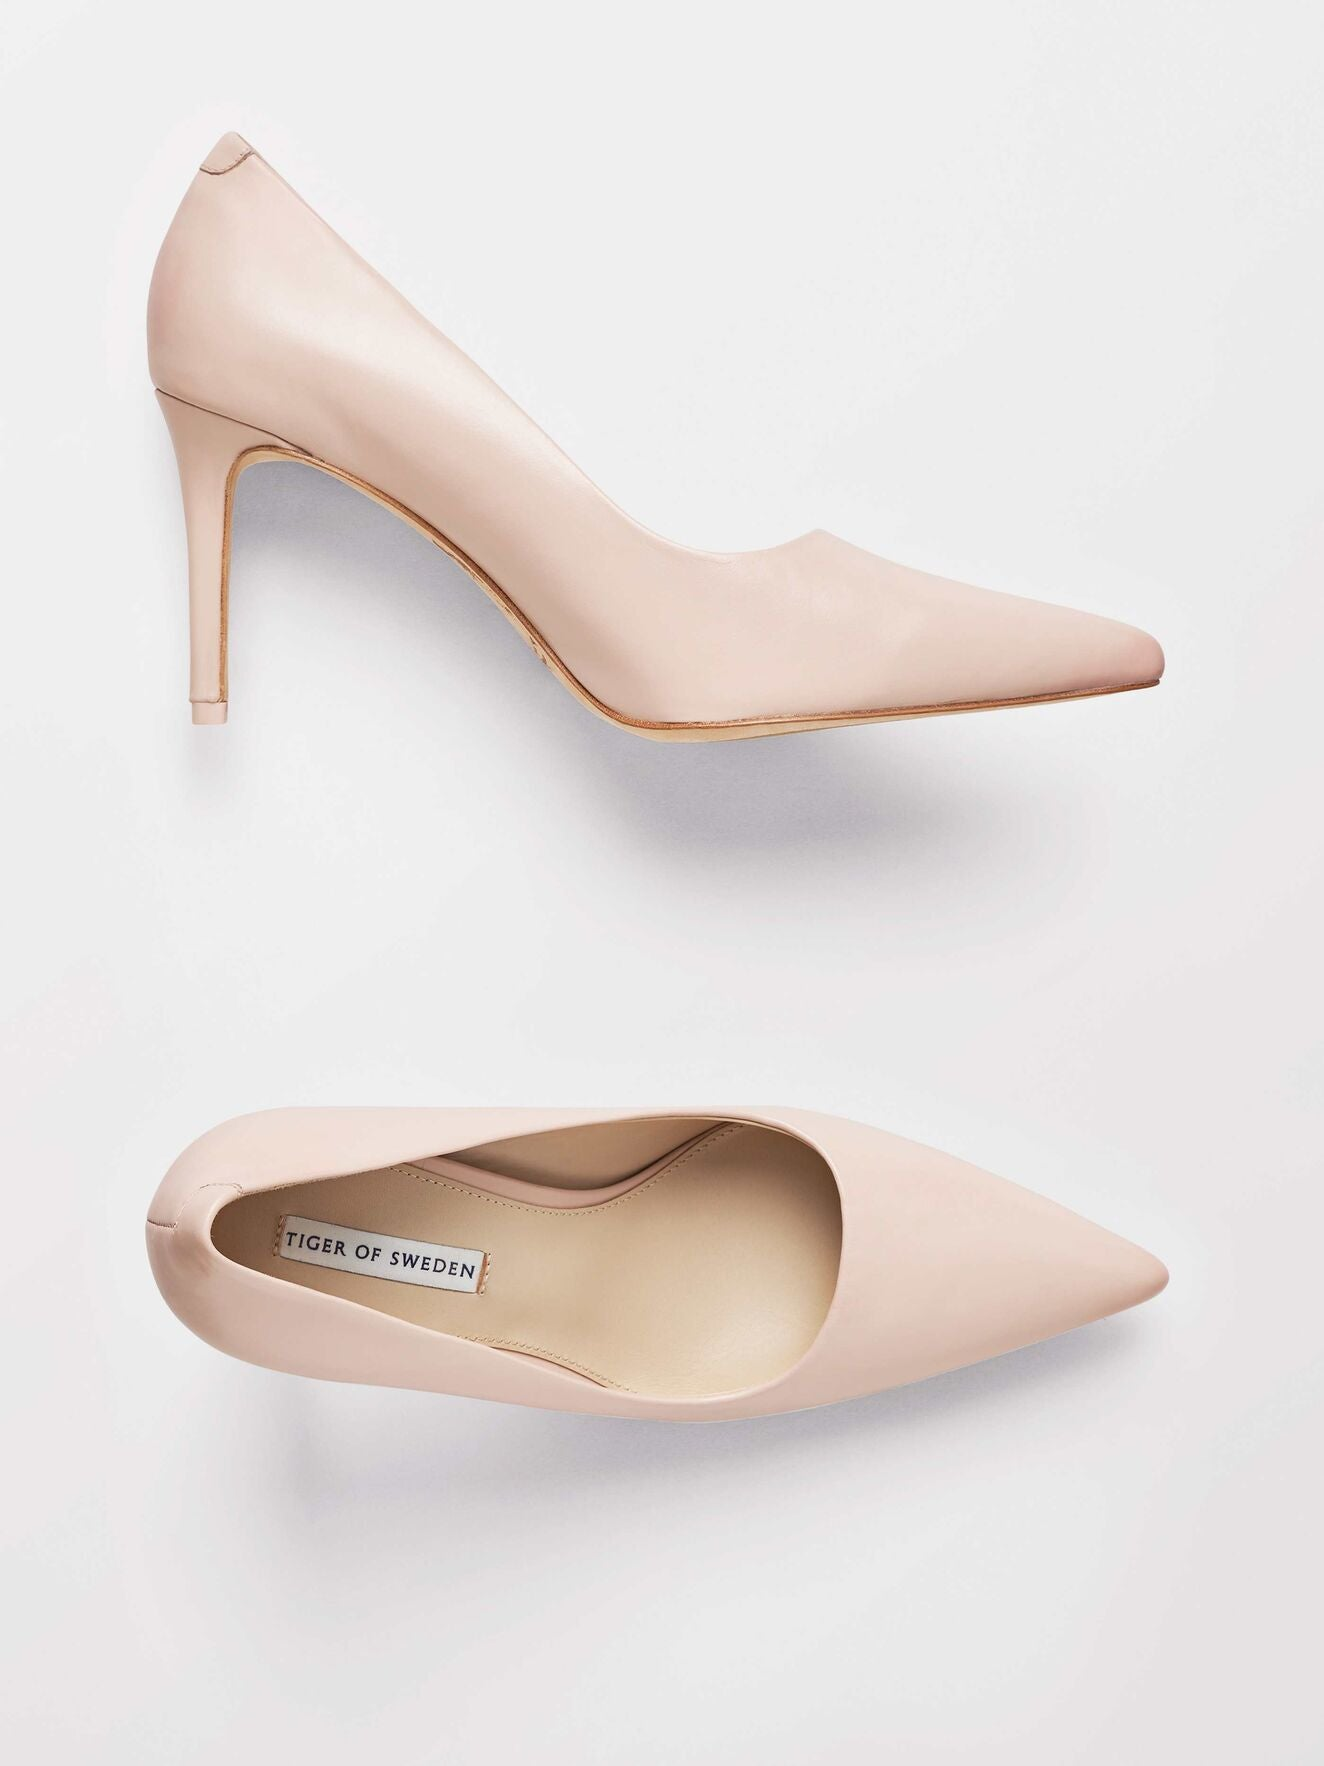 xero shoes nude pink u55925051 Tiger of Sweden